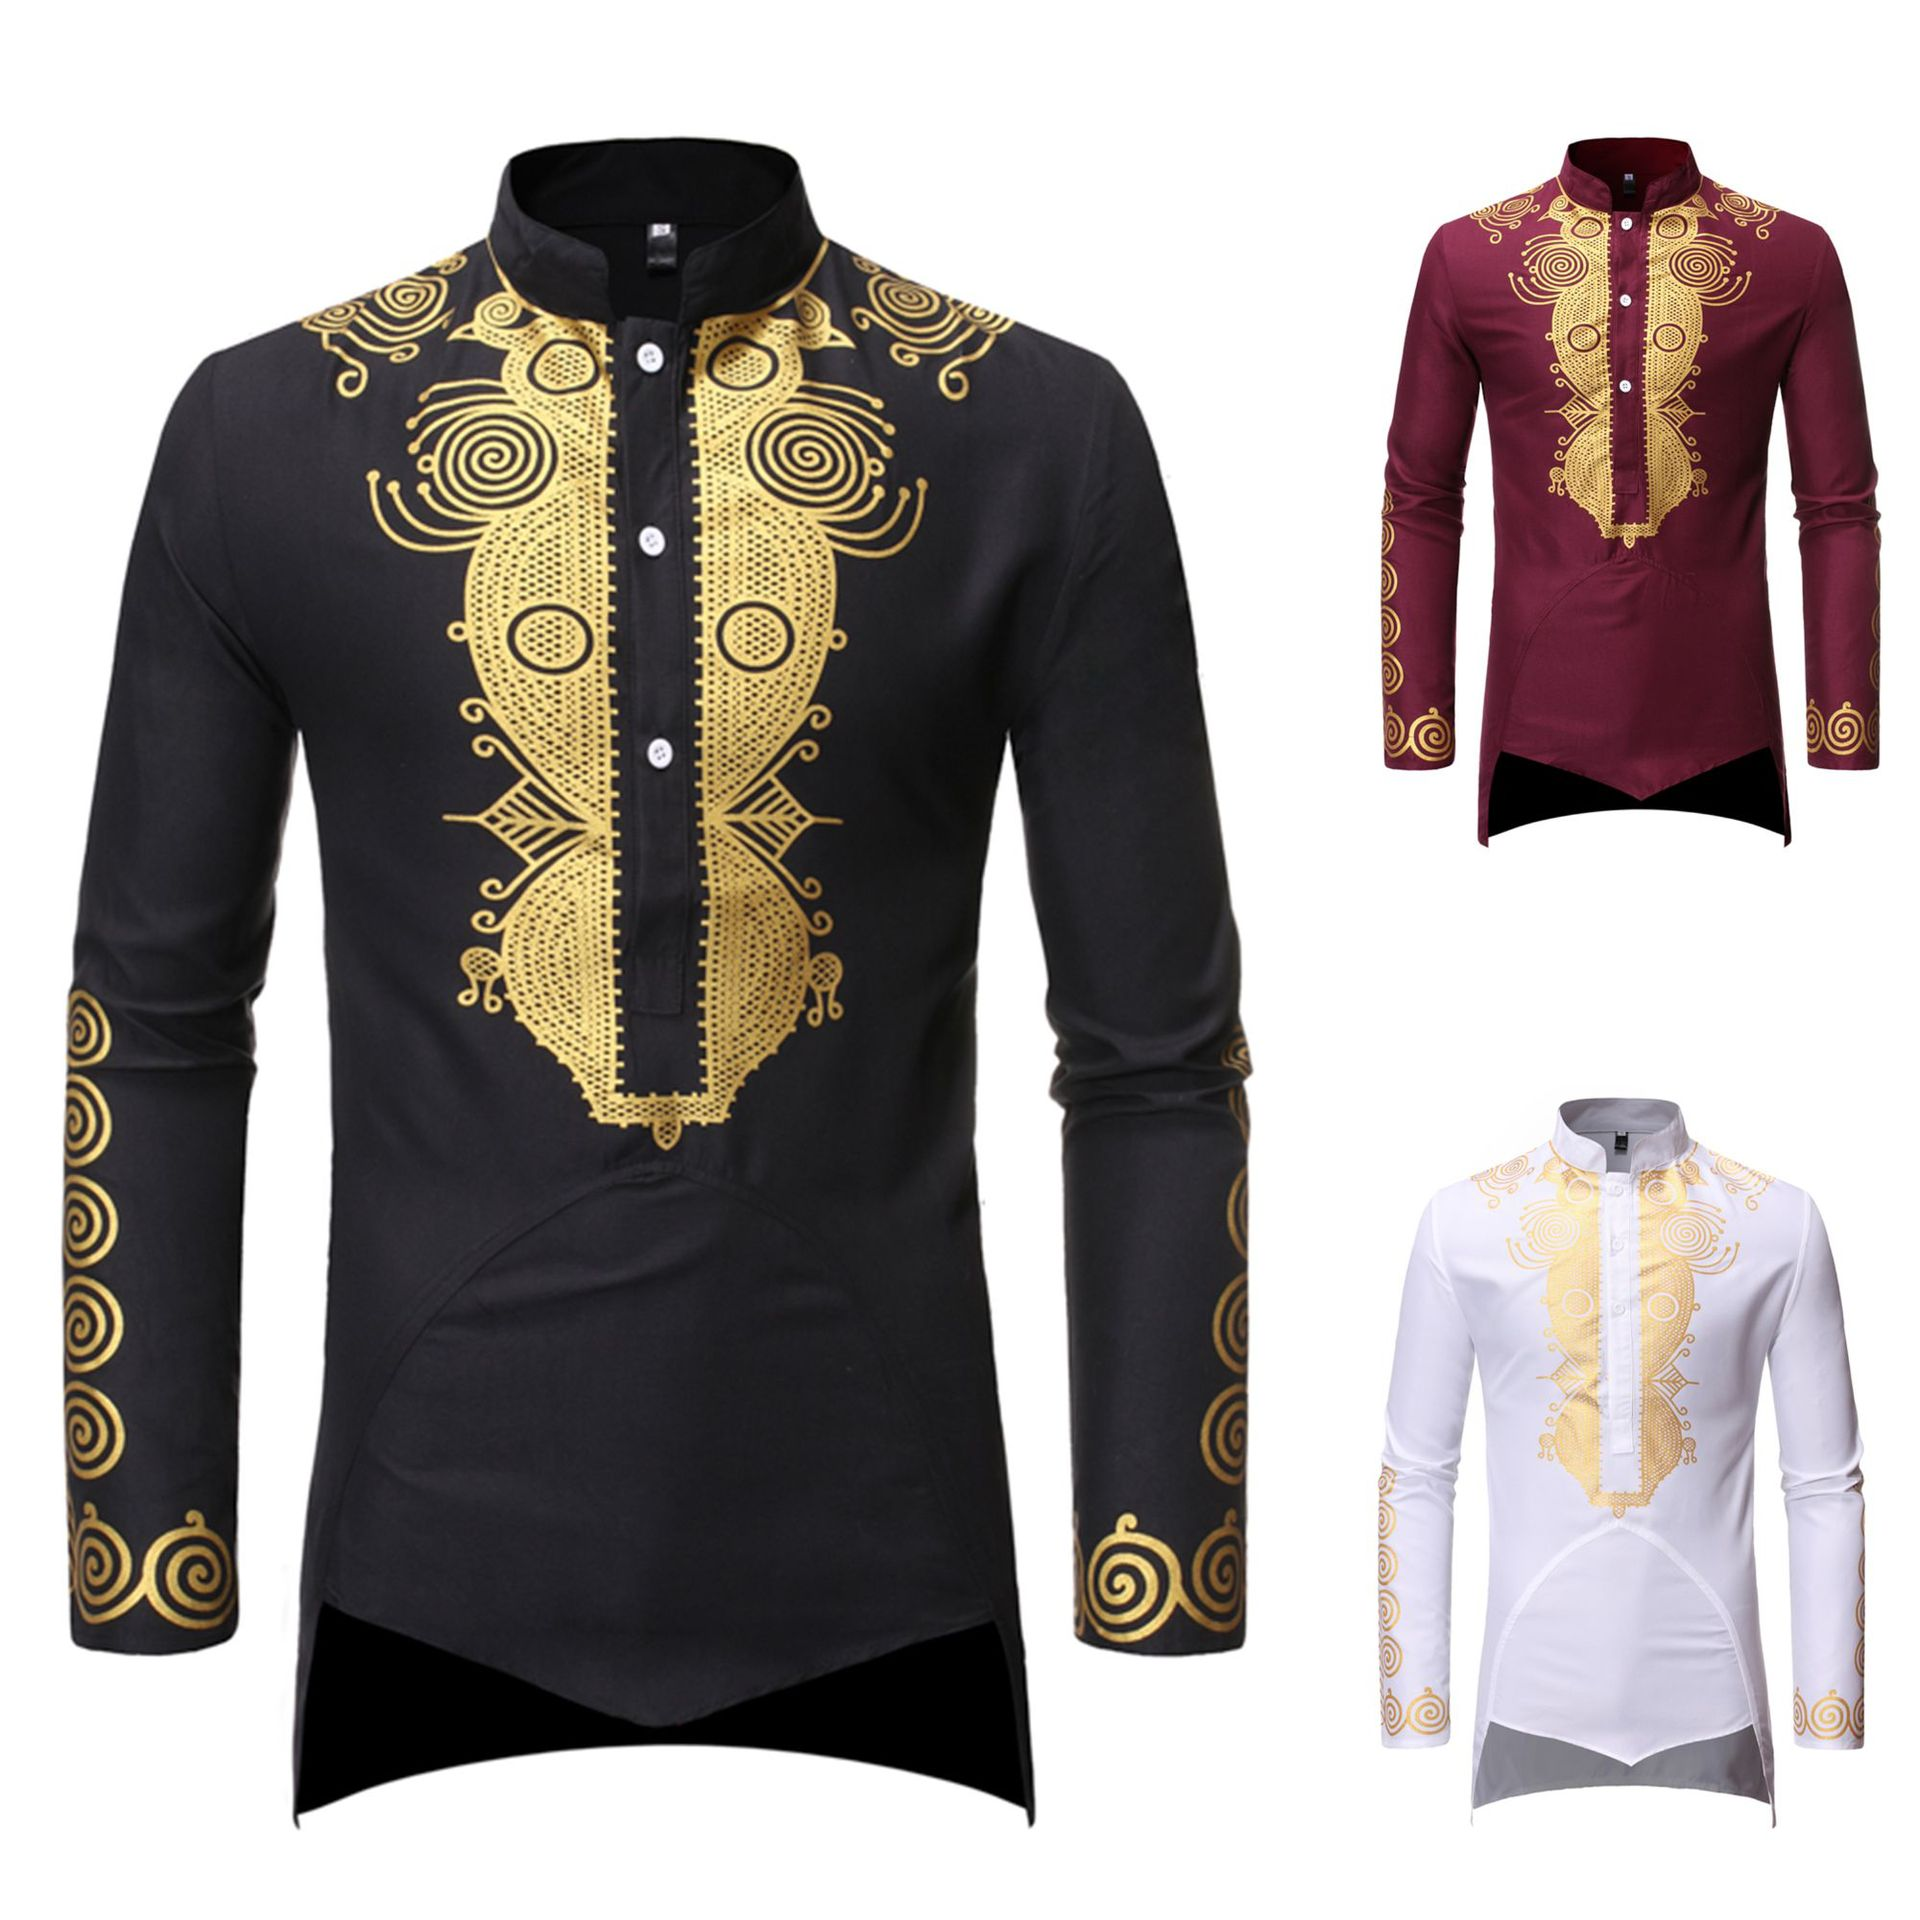 Muslim Men Shirt Islamic Clothes Print Stand Color Tops Kurta National Printed Long Sleeve Shirts Male Folk Hip Hop Streetwear